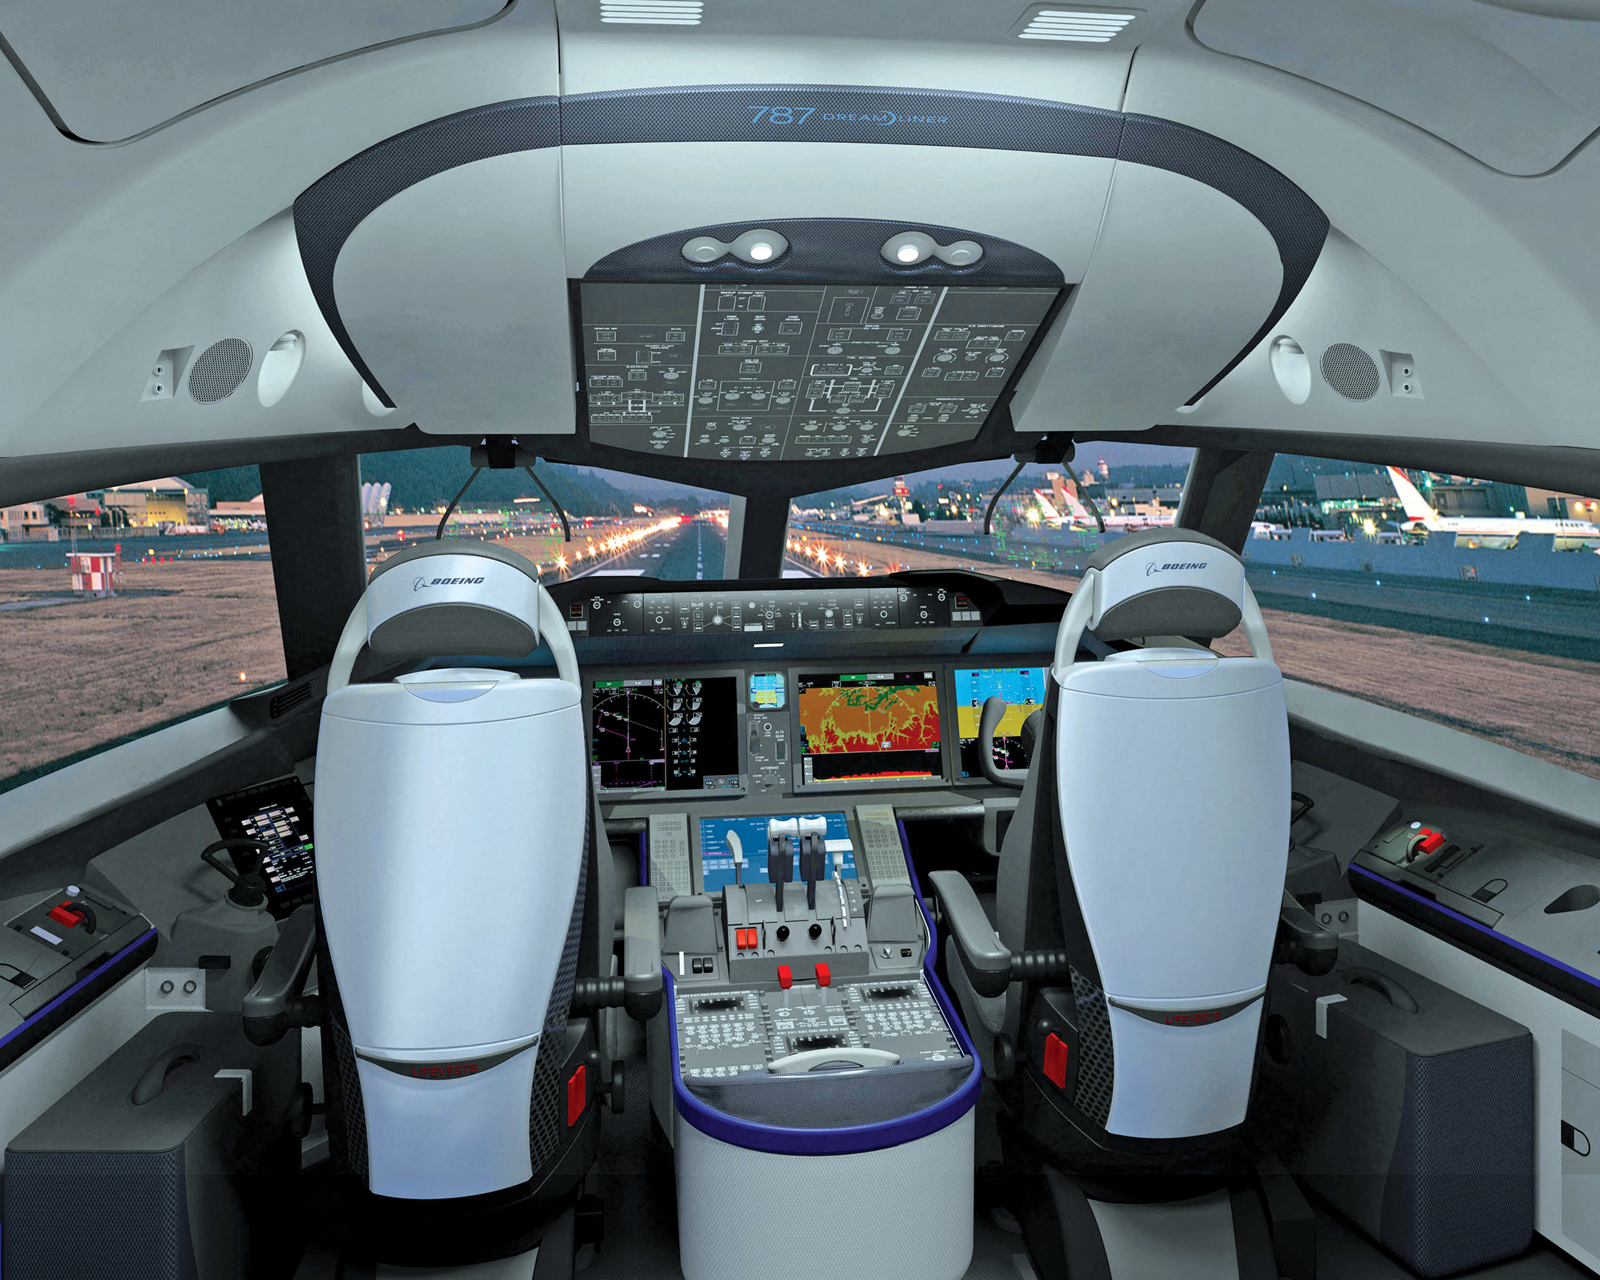 The Cockpit Of The New 787 Has Improved Visibility And A Clean, Uncluttered  Appearance Enhanced